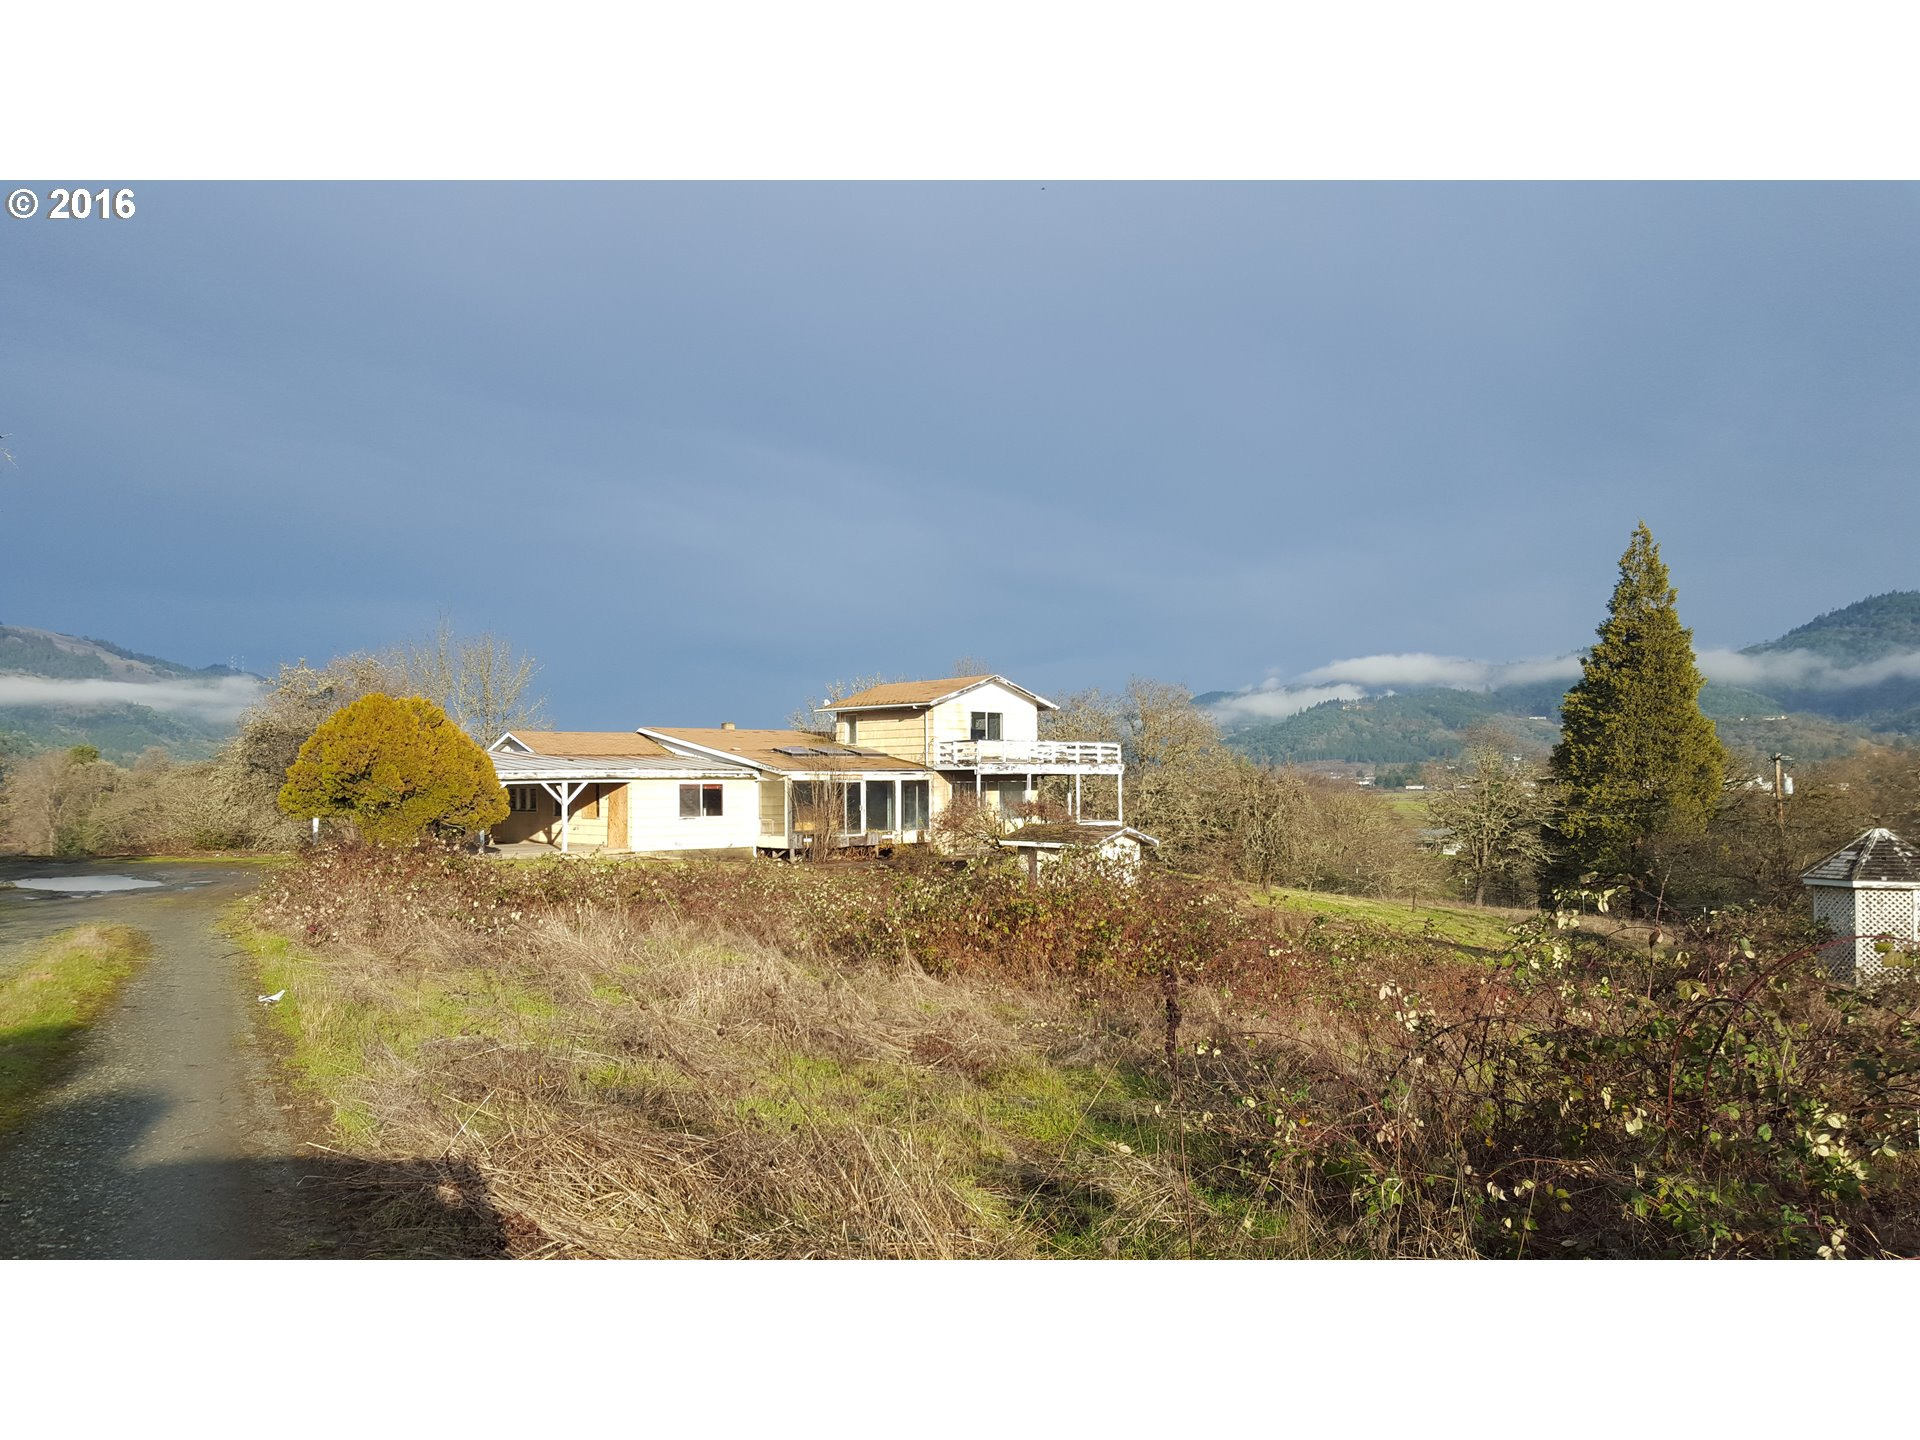 3716 Weaver Rd, Riddle, OR